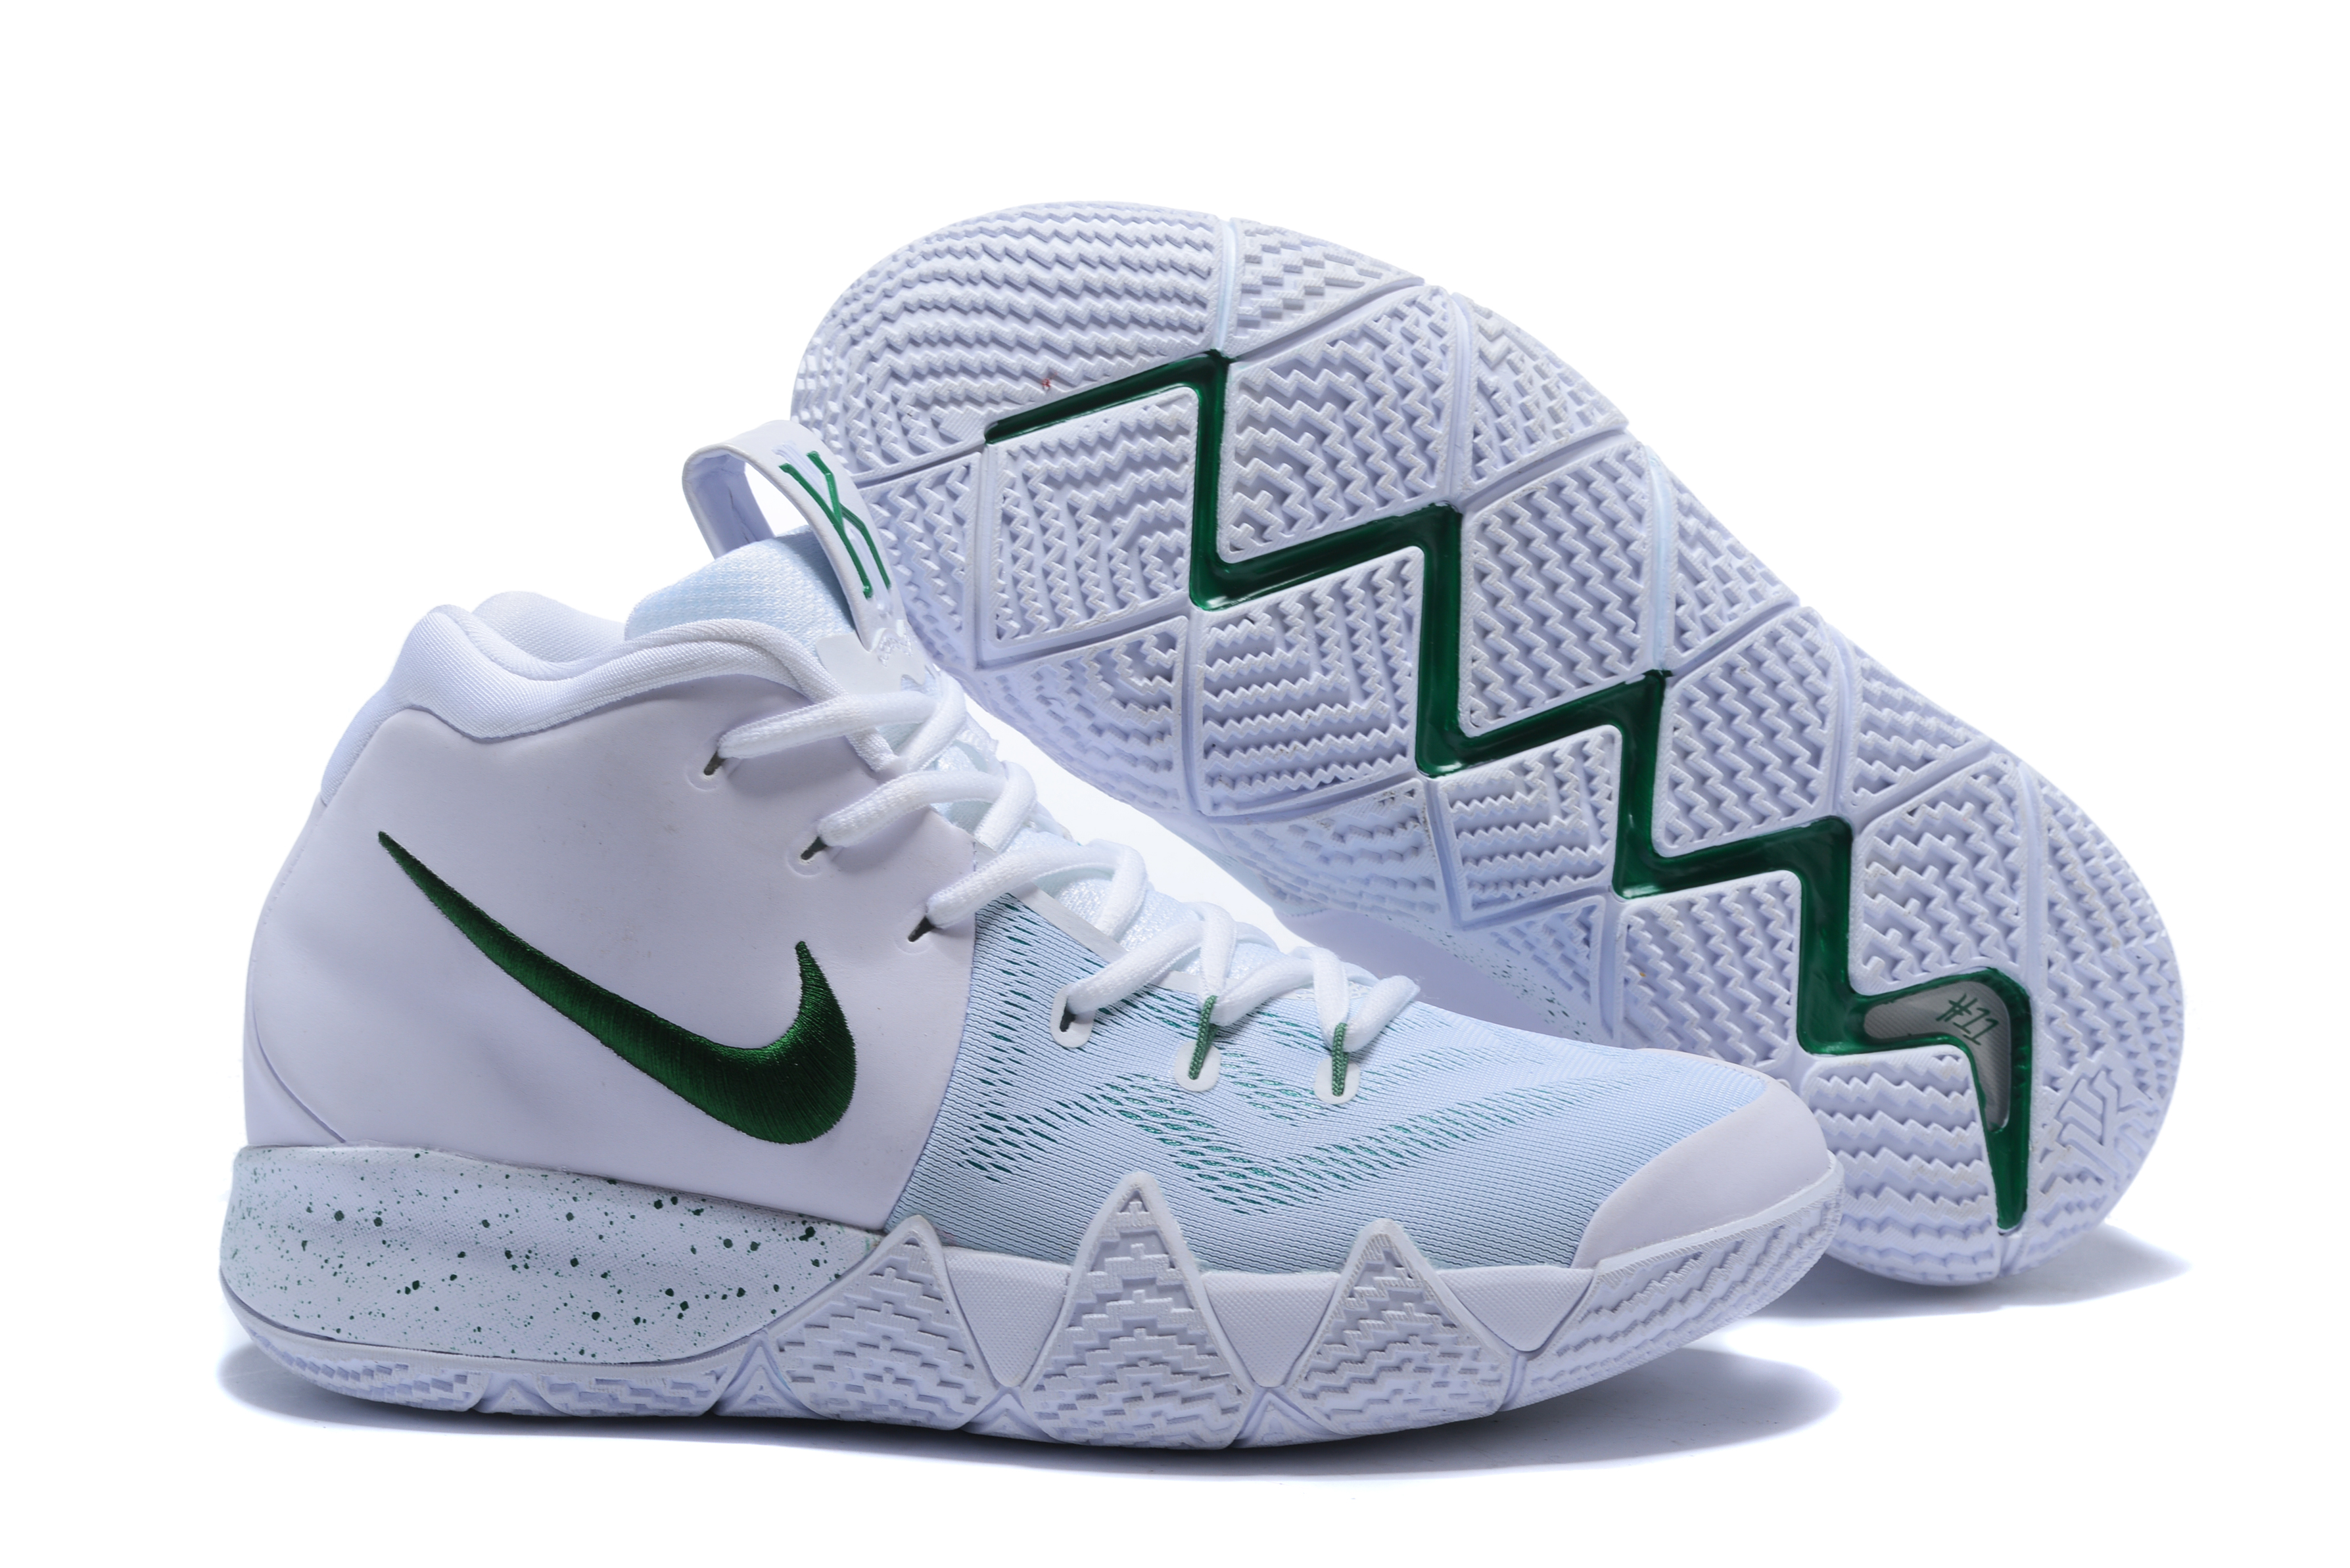 New Nike Kyrie 4 White Dark Green Shoes